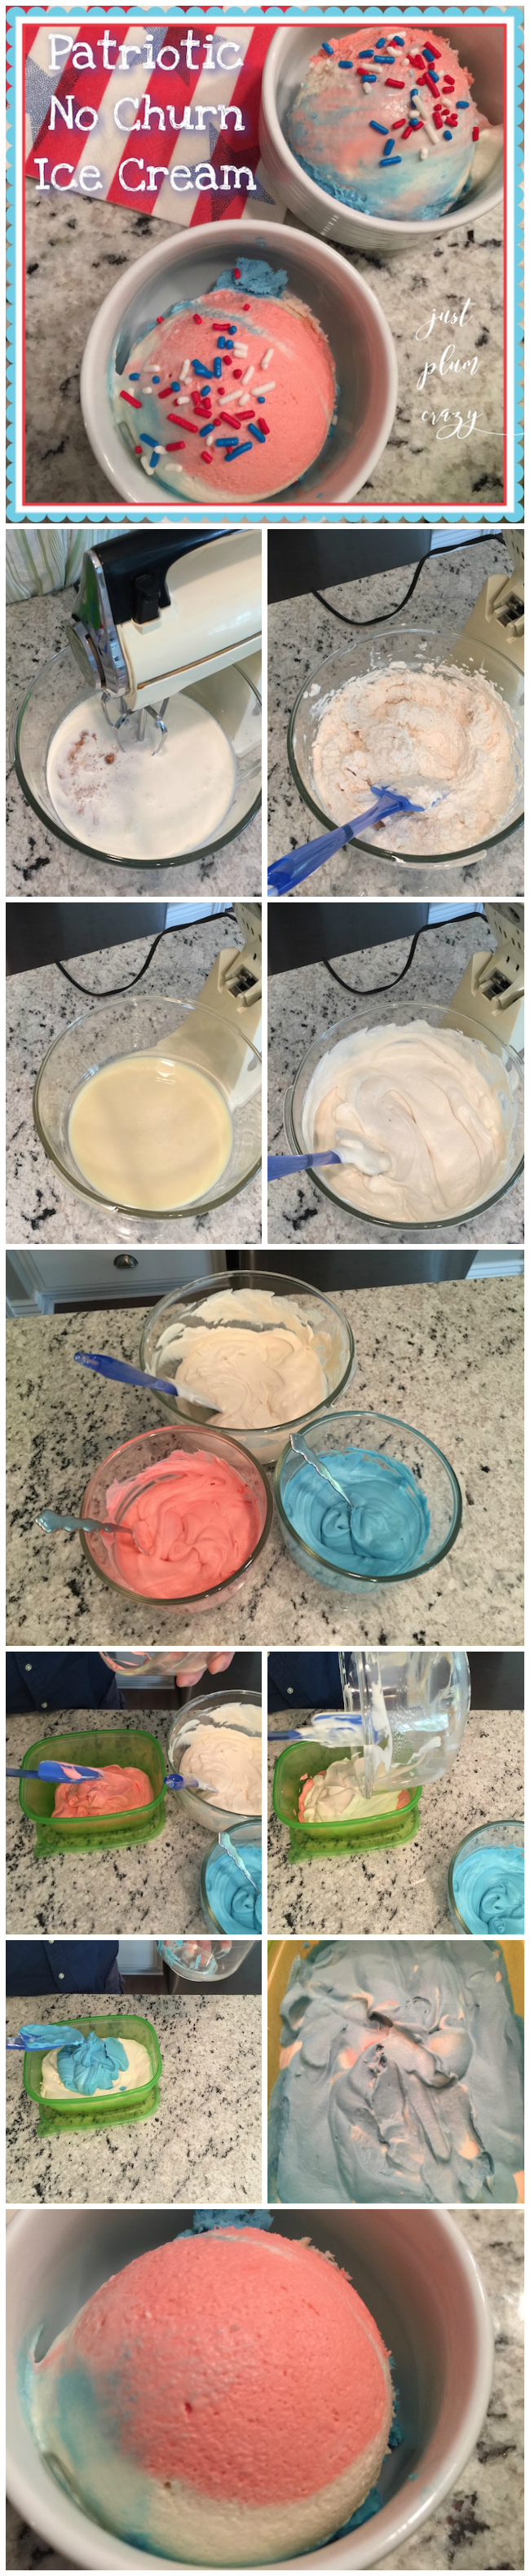 Today we are making a Patriotic No Churn Ice Cream recipe. It's vanilla flavor but you can make it any flavor that you'd like. Perfect for the holidays!